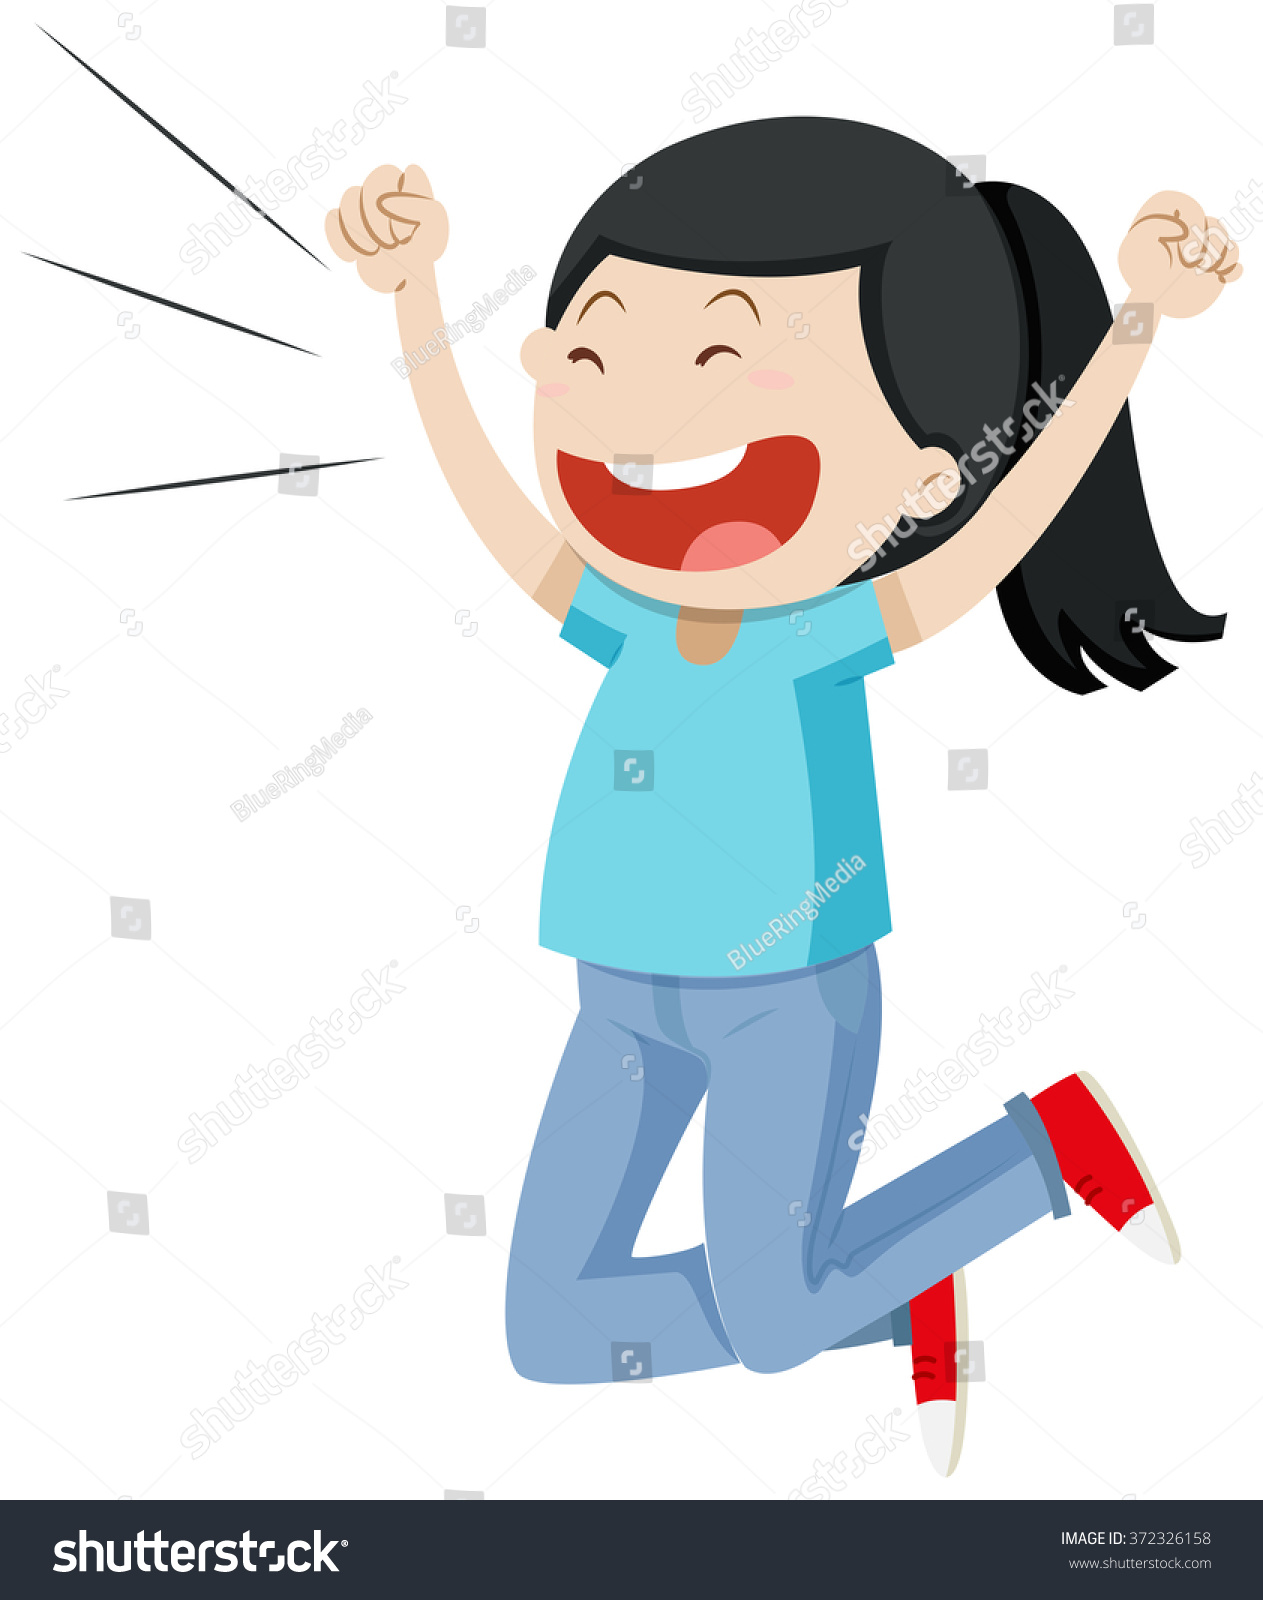 Girl Jumping Excitement Illustration Stock Vector ...